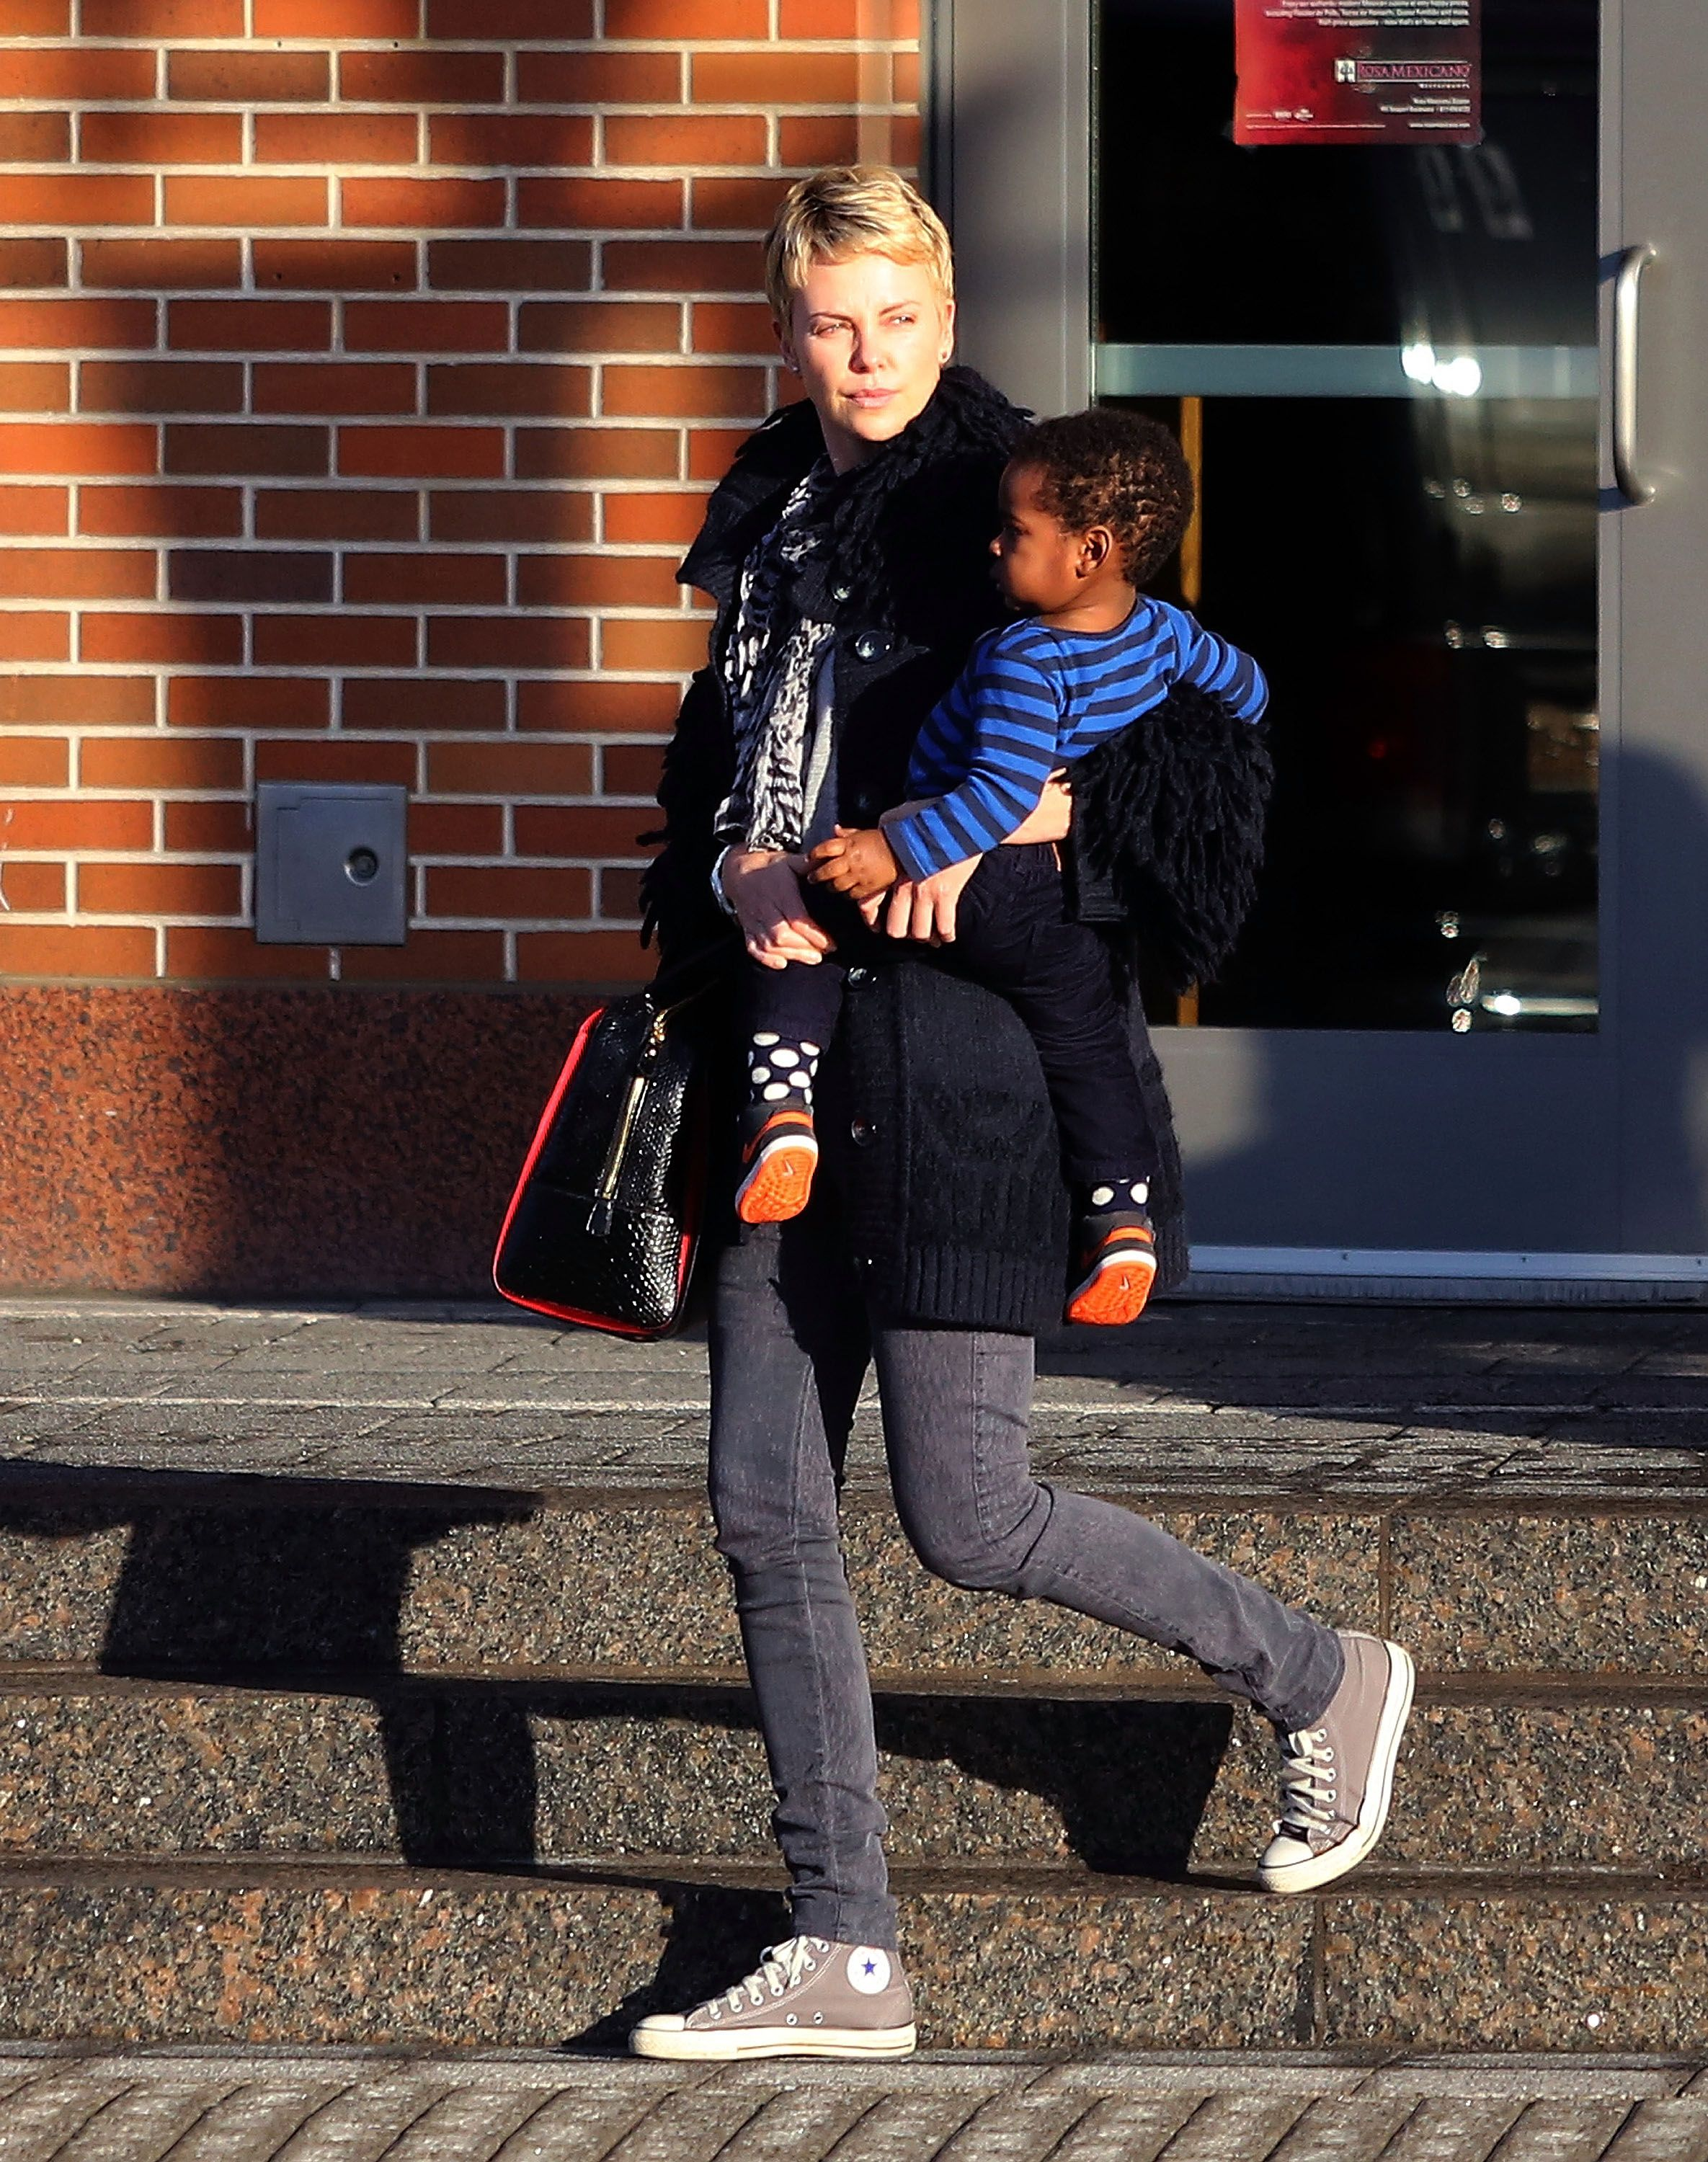 Charlize Theron with Jackson Theron on March 24, 2013, in Boston, Massachusetts | Photo: Stickman/Bauer-Griffin/GC Images